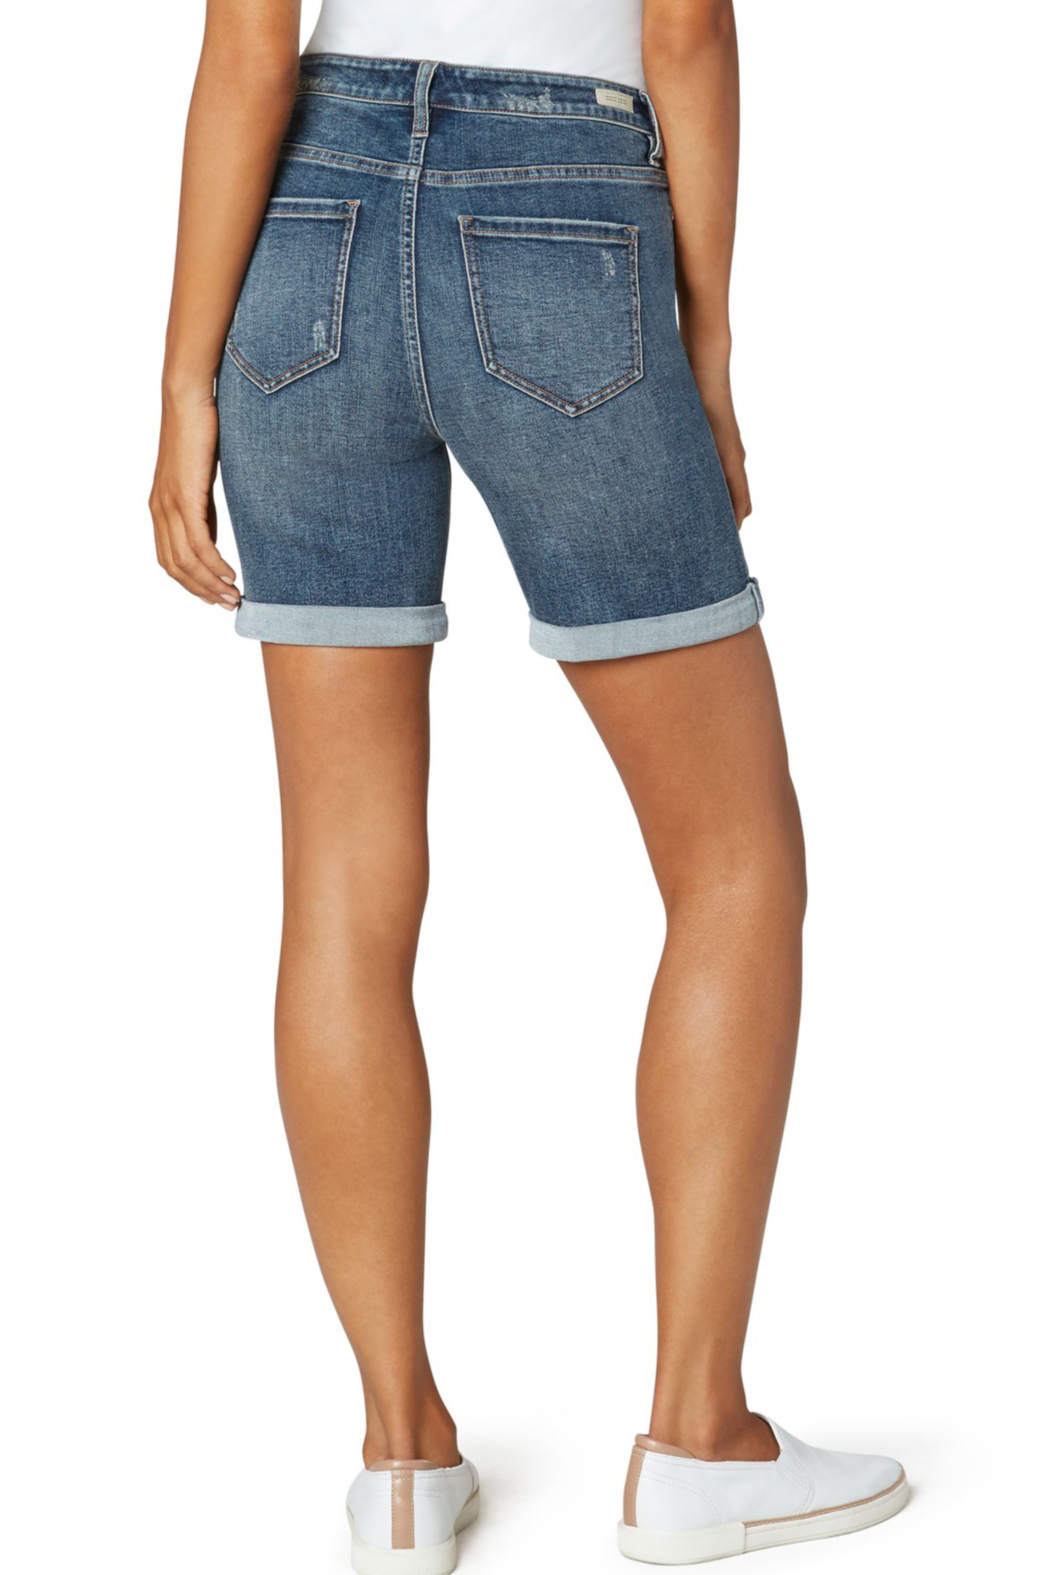 Liverpool  KRISTY HI-RISE DOUBLE ROLLED SHORT - Front Full Image